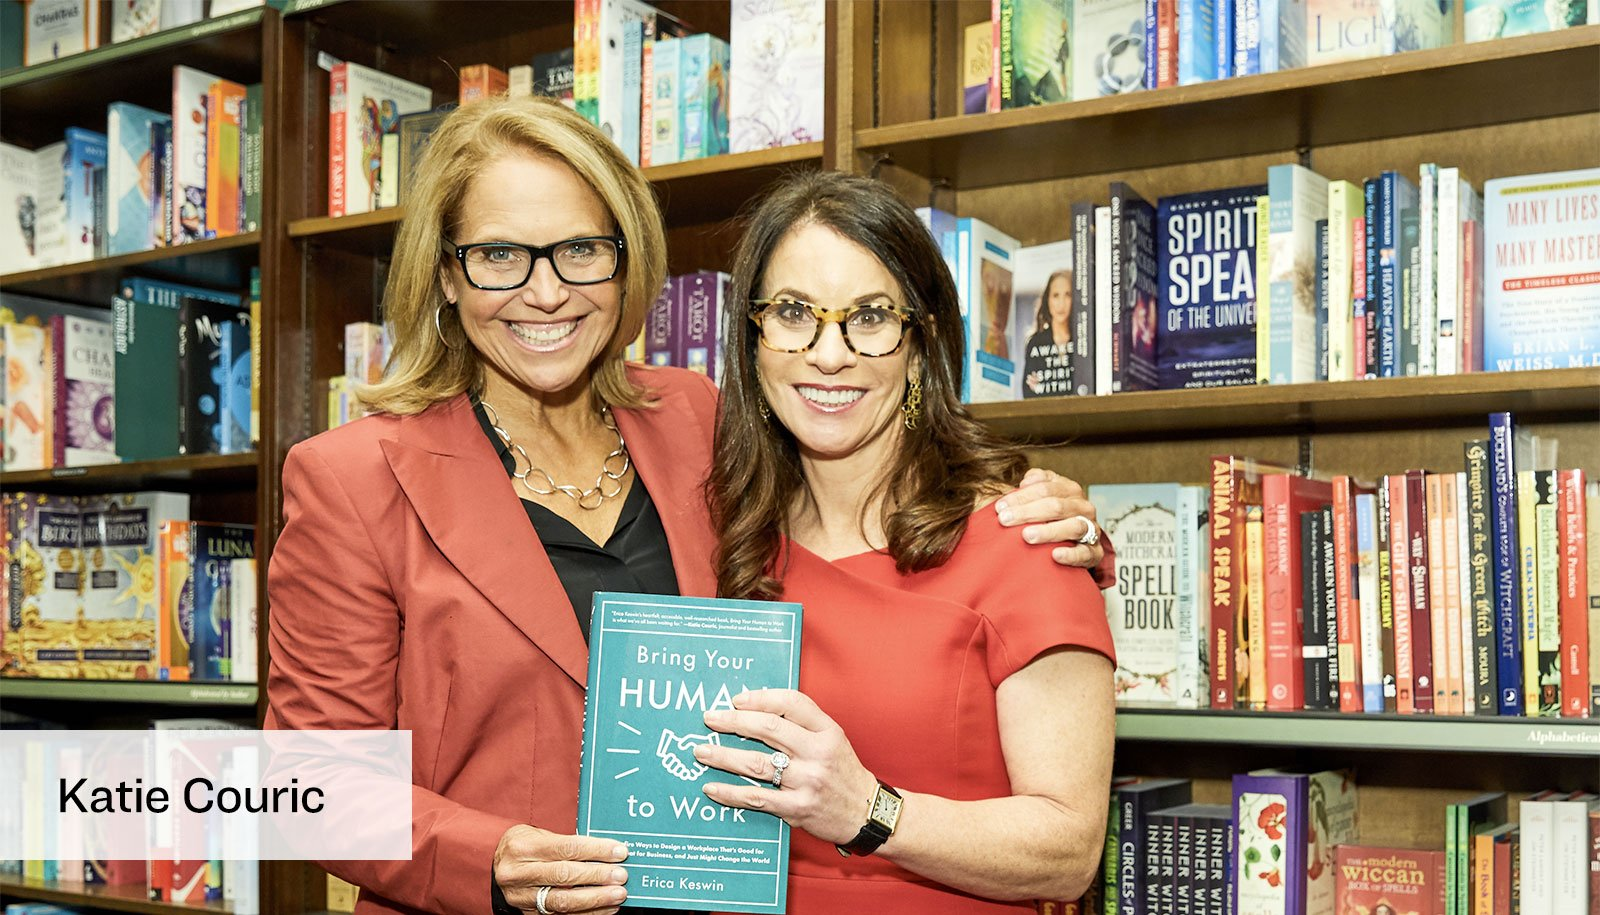 Katie Couric and Erica Keswin at the Bring Your Human to Work book launch